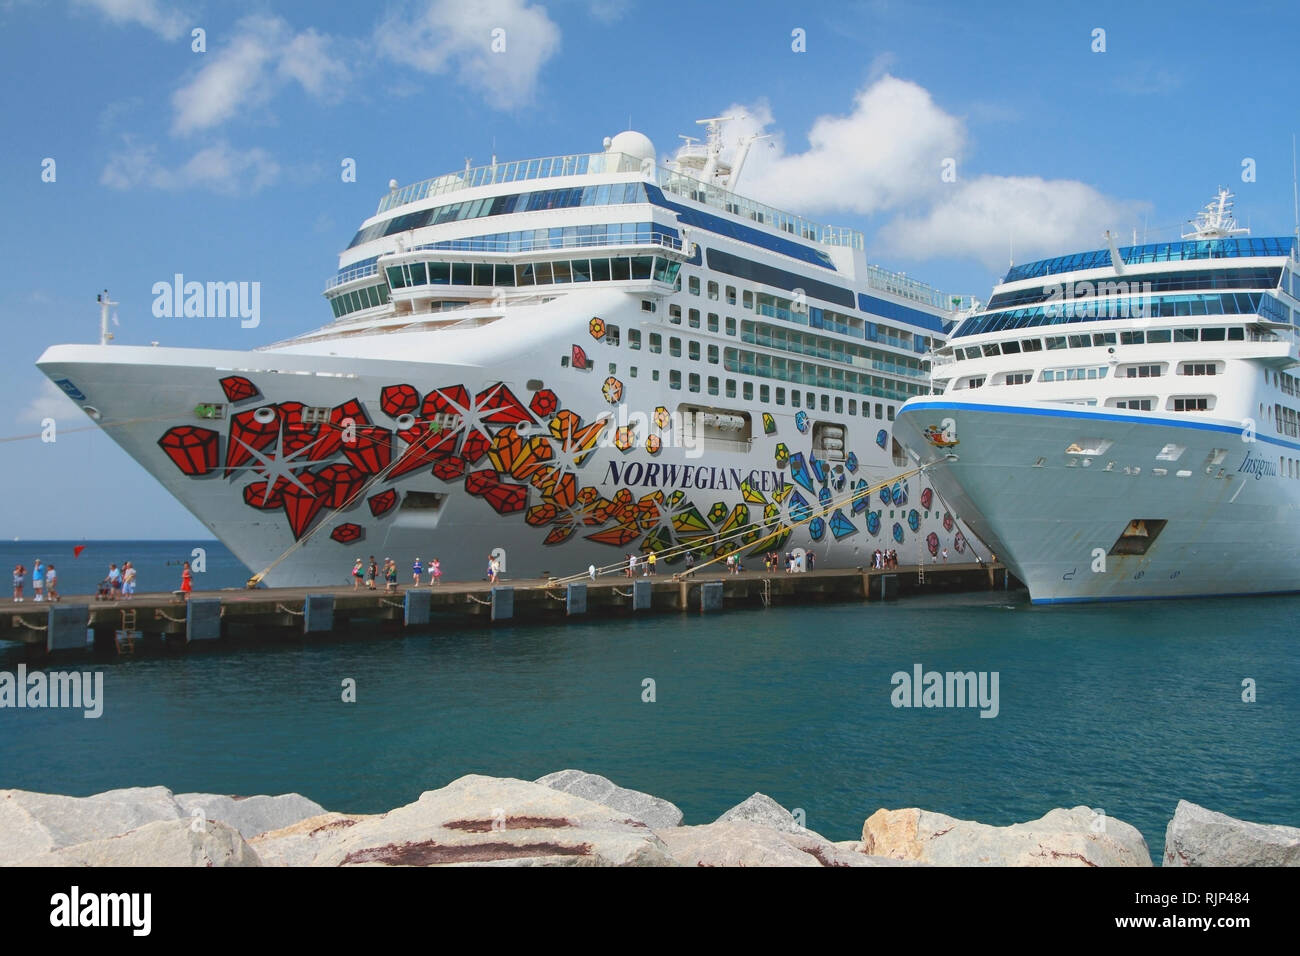 St. George's, Grenada - Nov 08, 2017: Cruise liners moored to pier - Stock Image